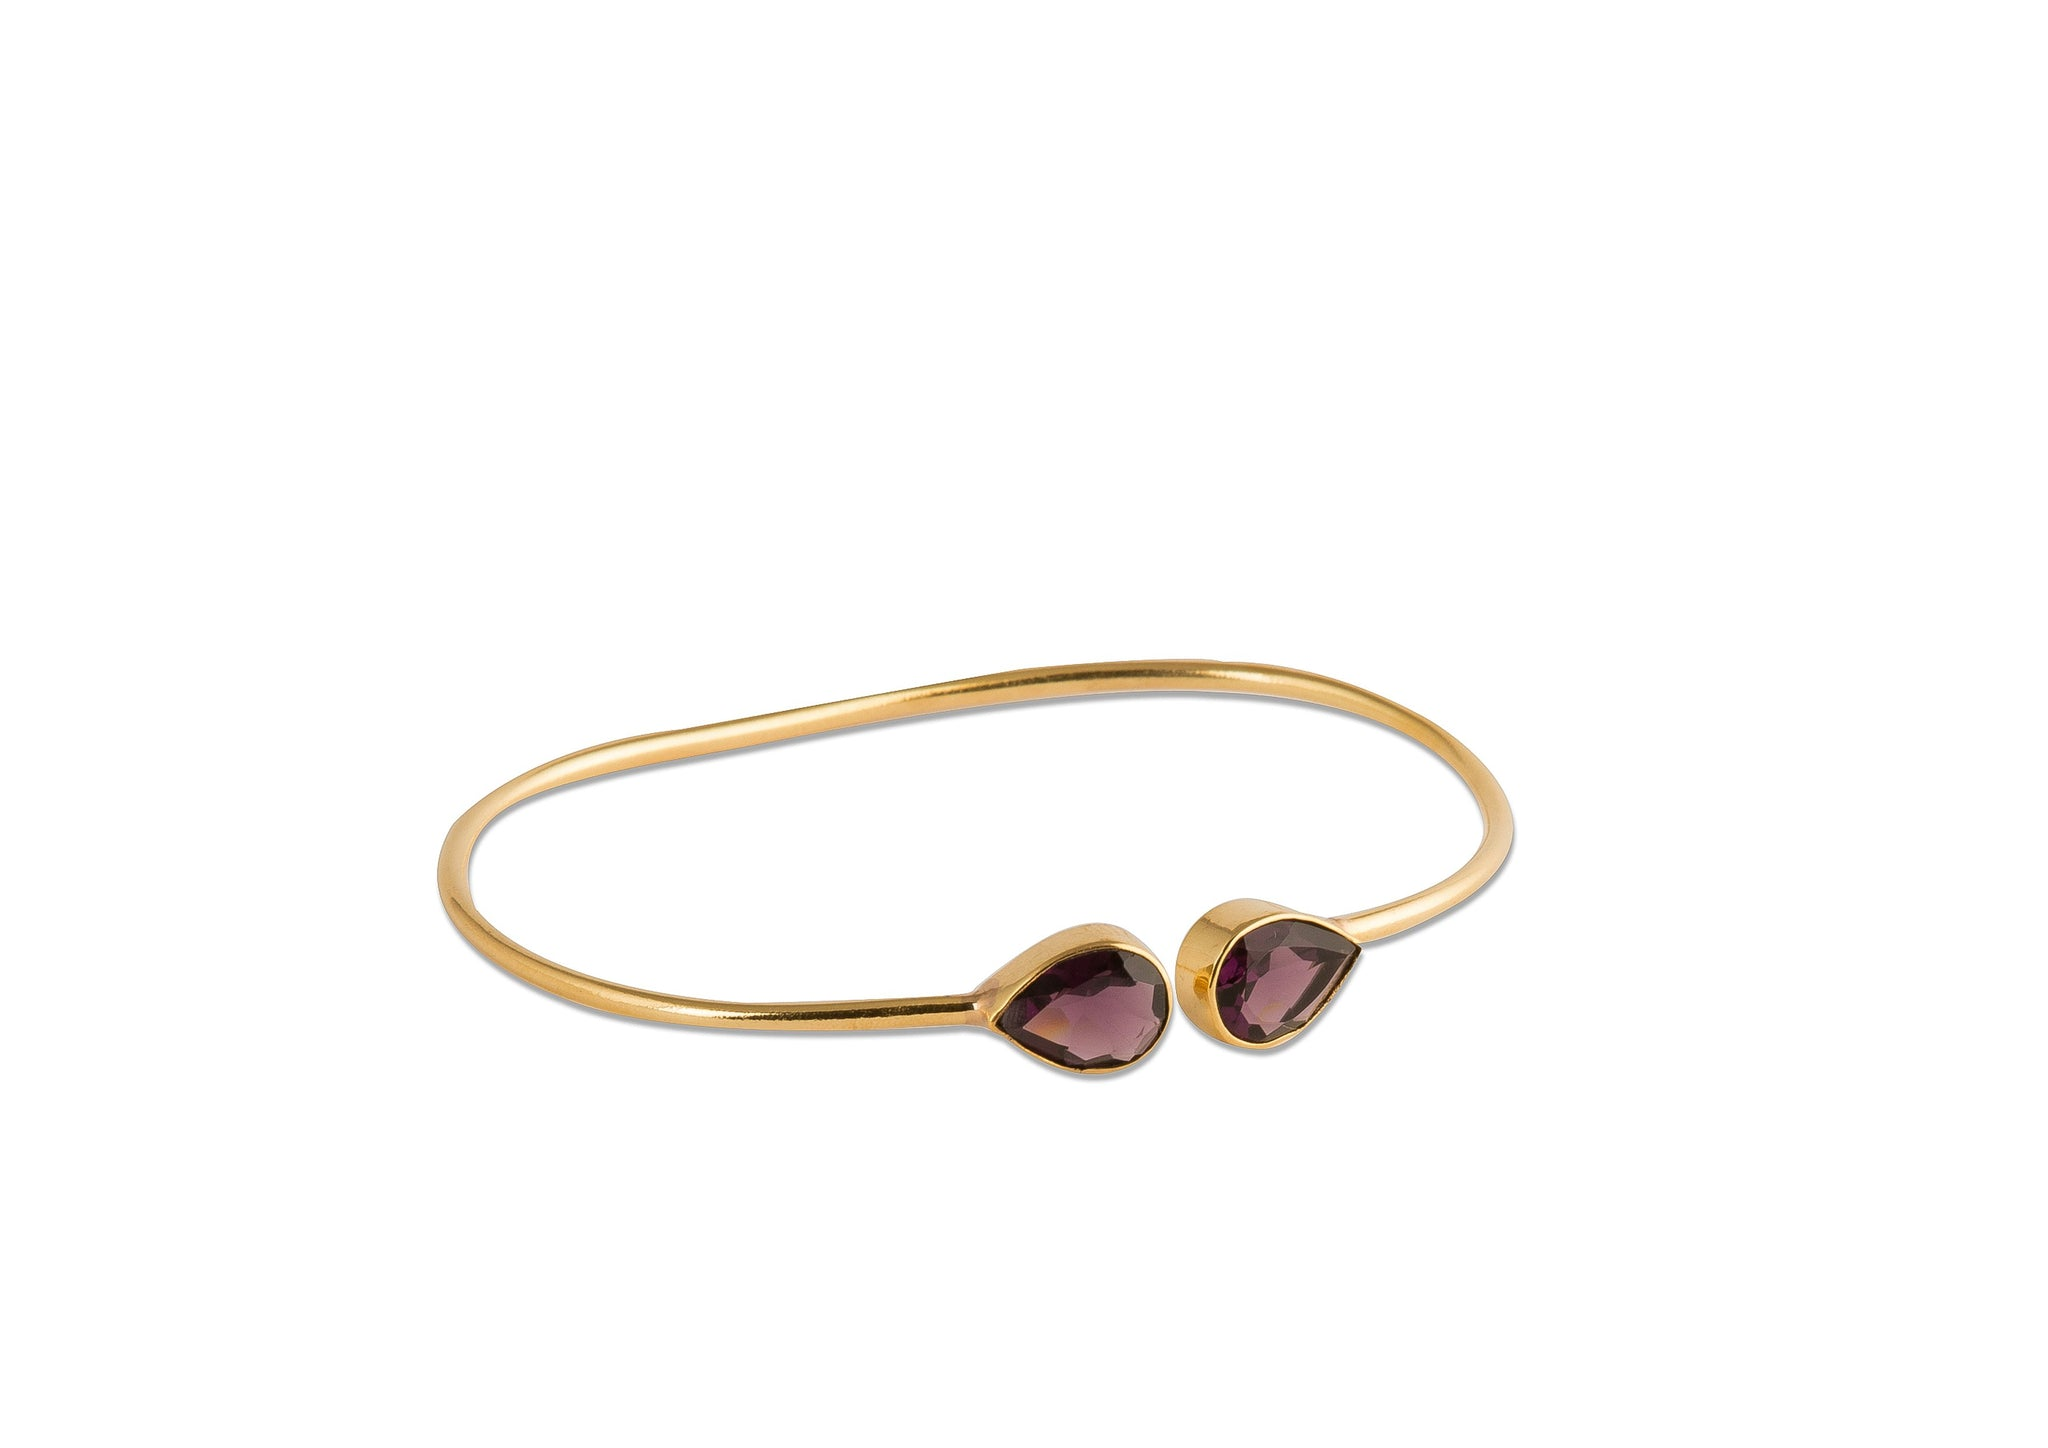 Levi gold-plated silver bracelet in amethyst